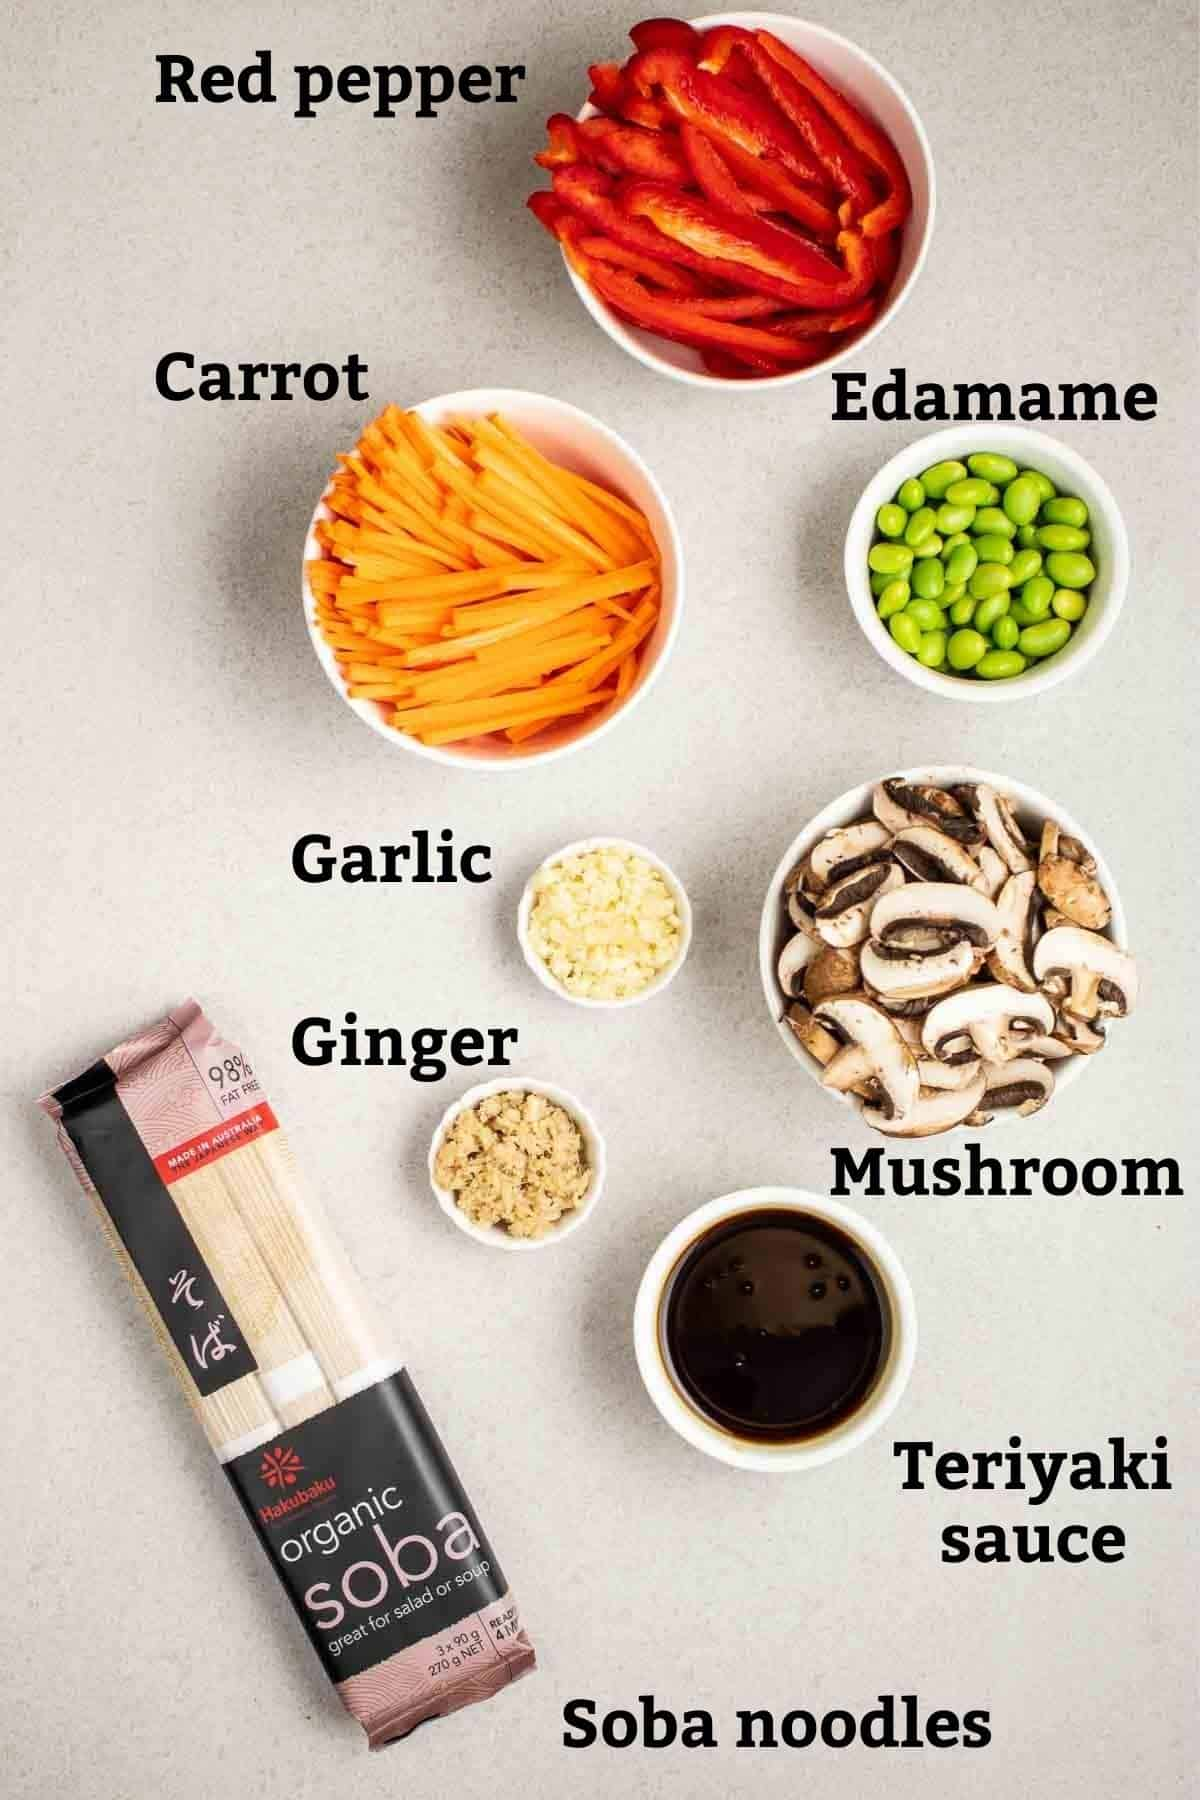 Ingredients needed like soba noodles, teriyaki sauce, ginger, garlic and other vegetables on a grey background.